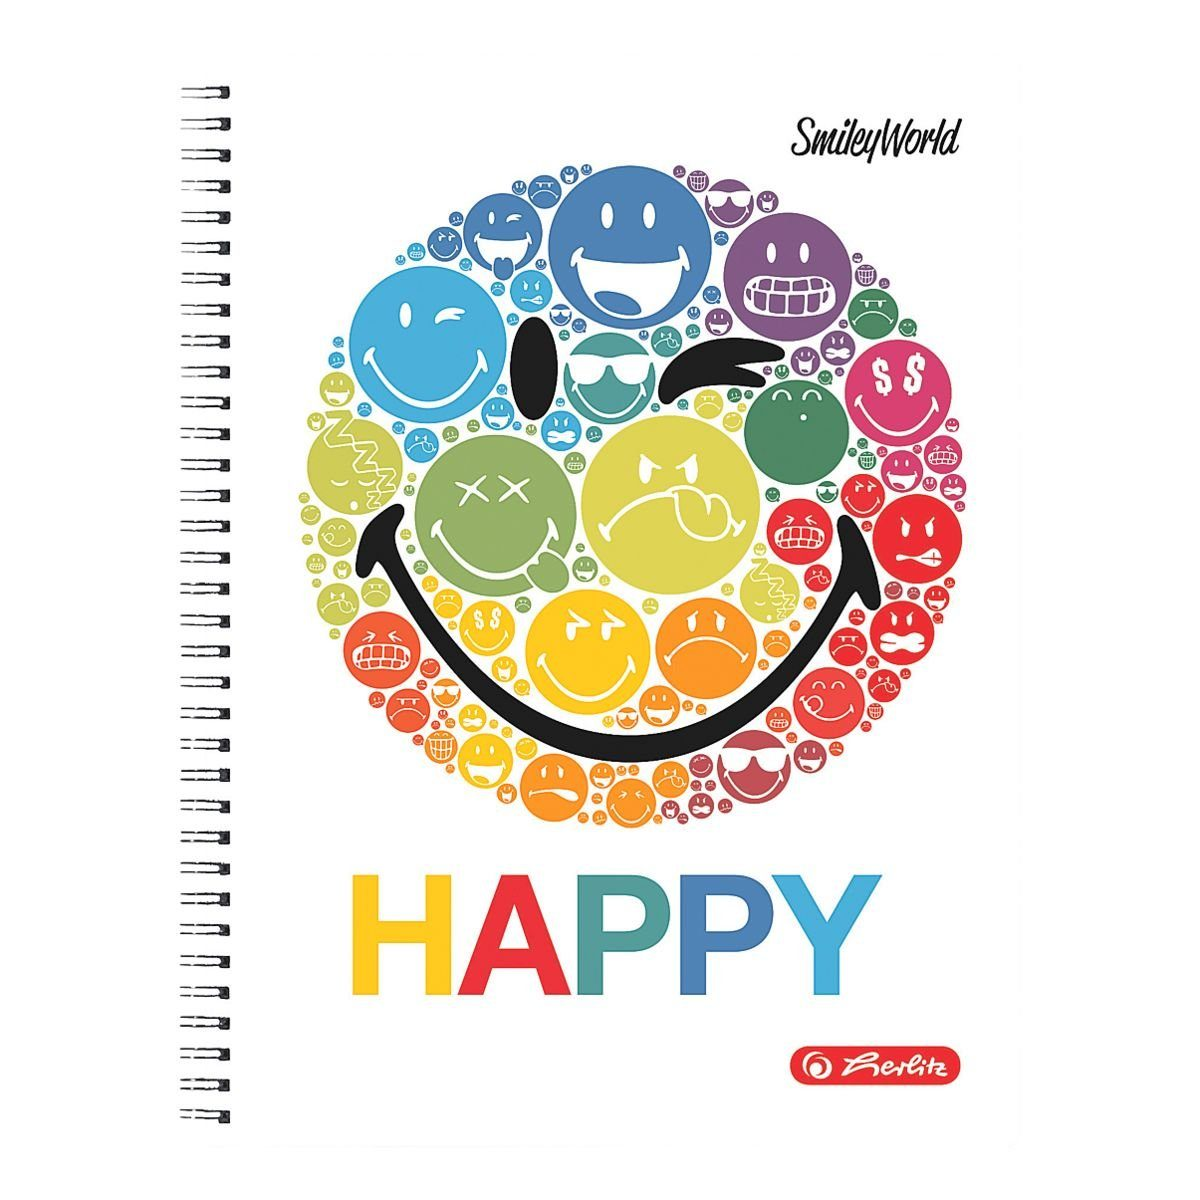 Herlitz Collegeblock A4 kariert, holzrfreies Papier »SmileyWorld Rainbow«